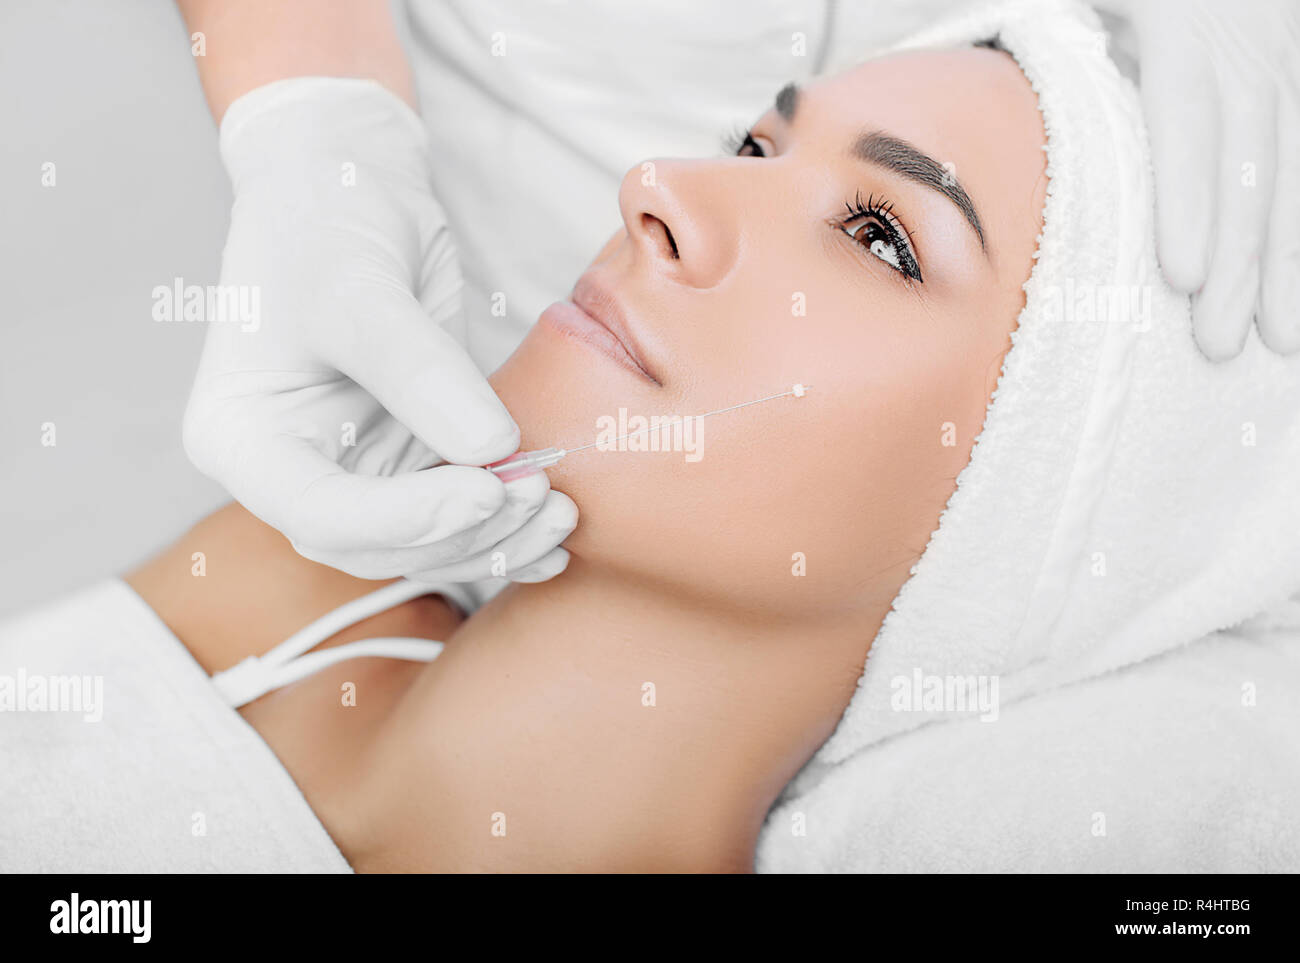 cropped woman face getting facelift , procedure mesothreads lifting skin Stock Photo